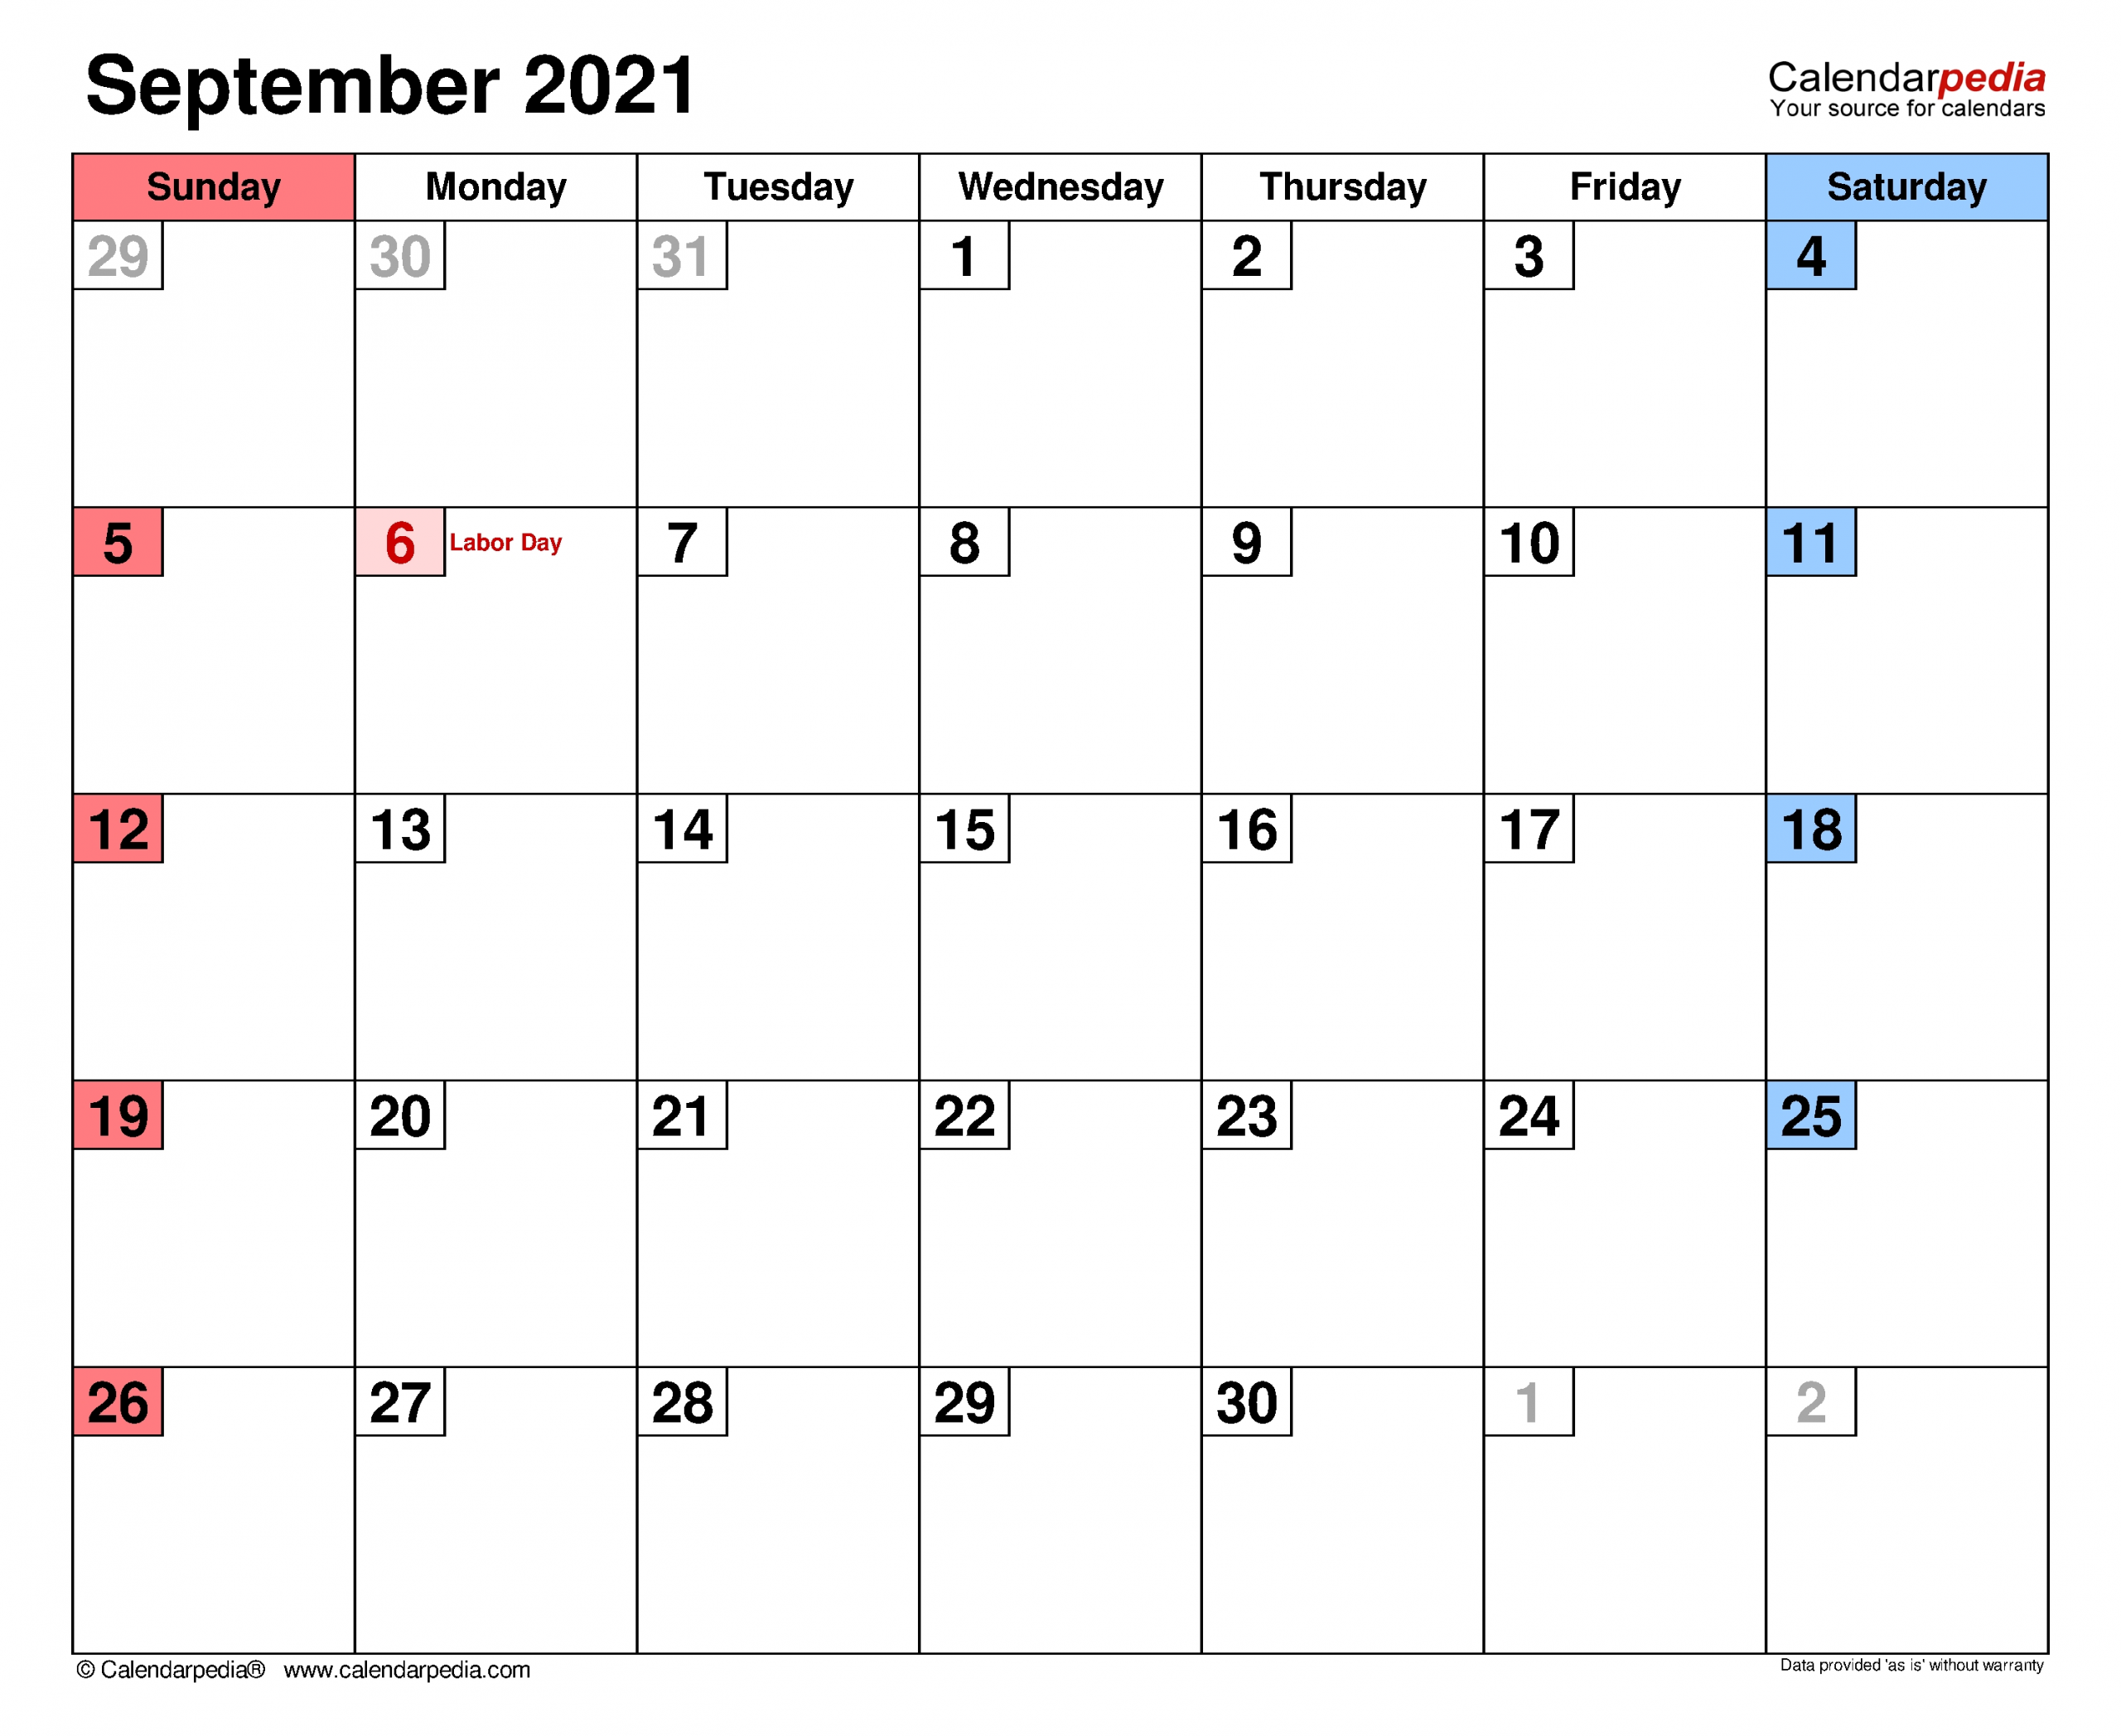 September 2021 Calendar   Templates For Word, Excel And Pdf within Excel September 2021 Monthly Planner Template Graphics